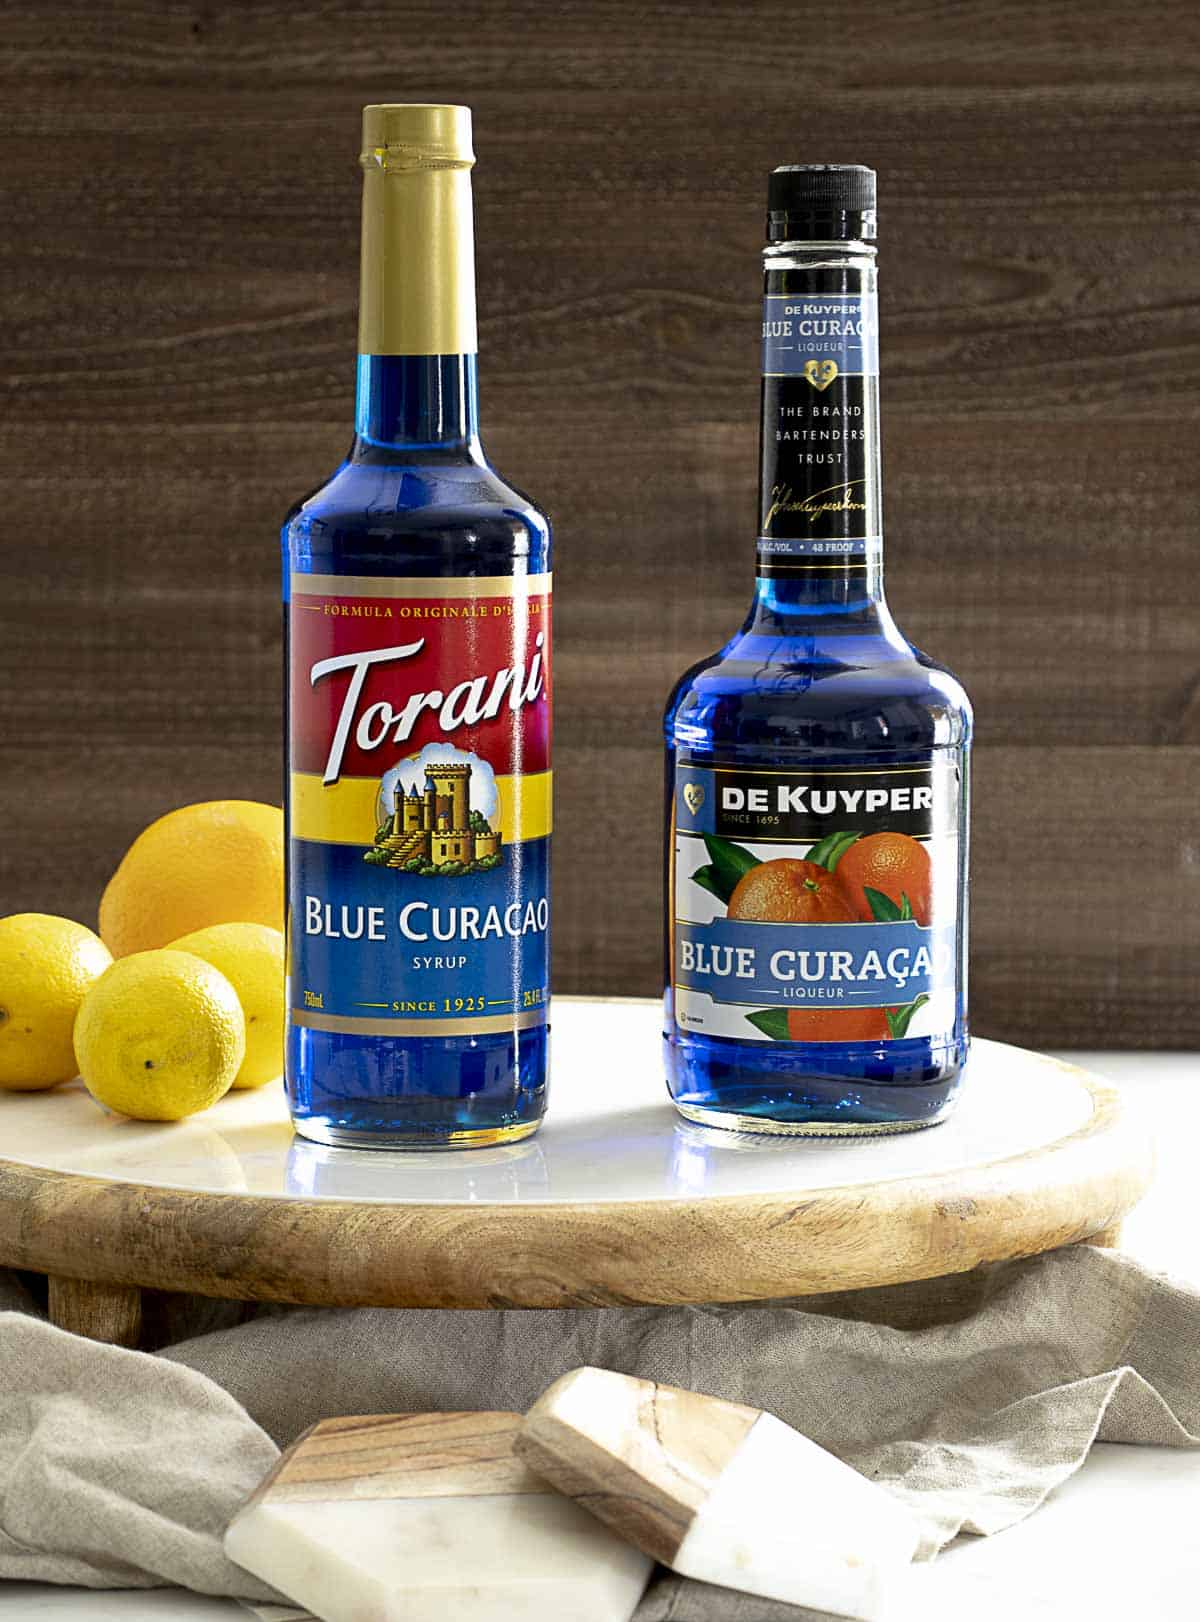 Bottle of blue curacao syrup and blue curacao liqueur next to one another.